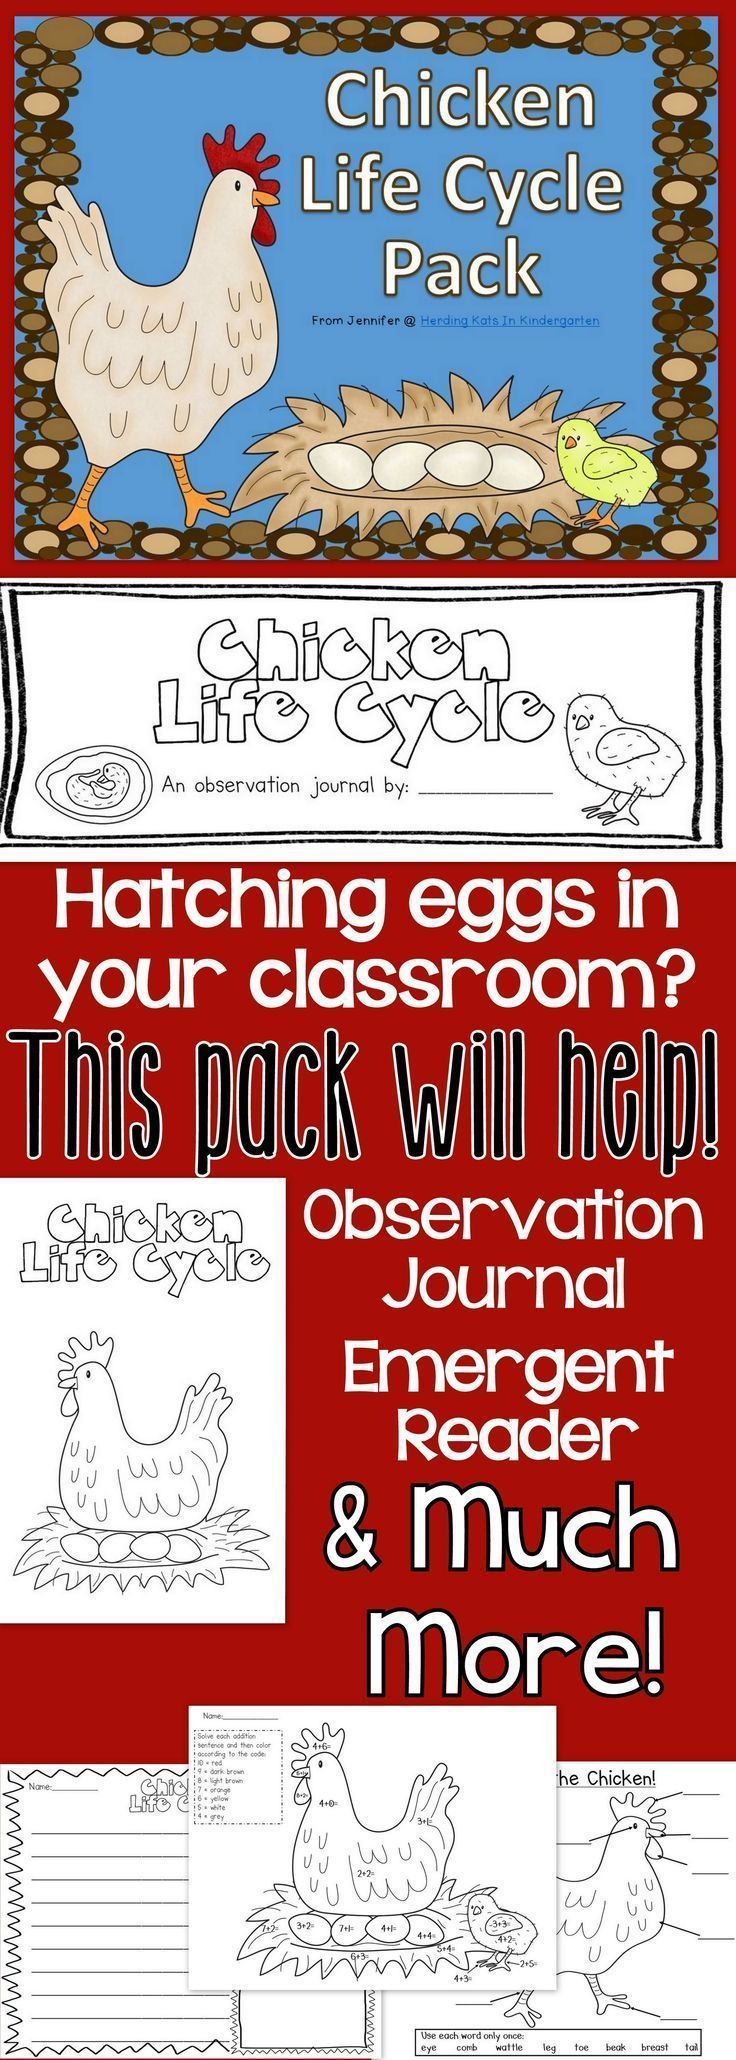 Raising chicks in class? This pack will be a big help for a Chicken Life Cycle unit! Contains a student observation journal, emergent reader, KWL chart, labeling & sequencing pages & much more! #kindergarten #lifecycles #raisingchickens #hatchingeggs #chickens